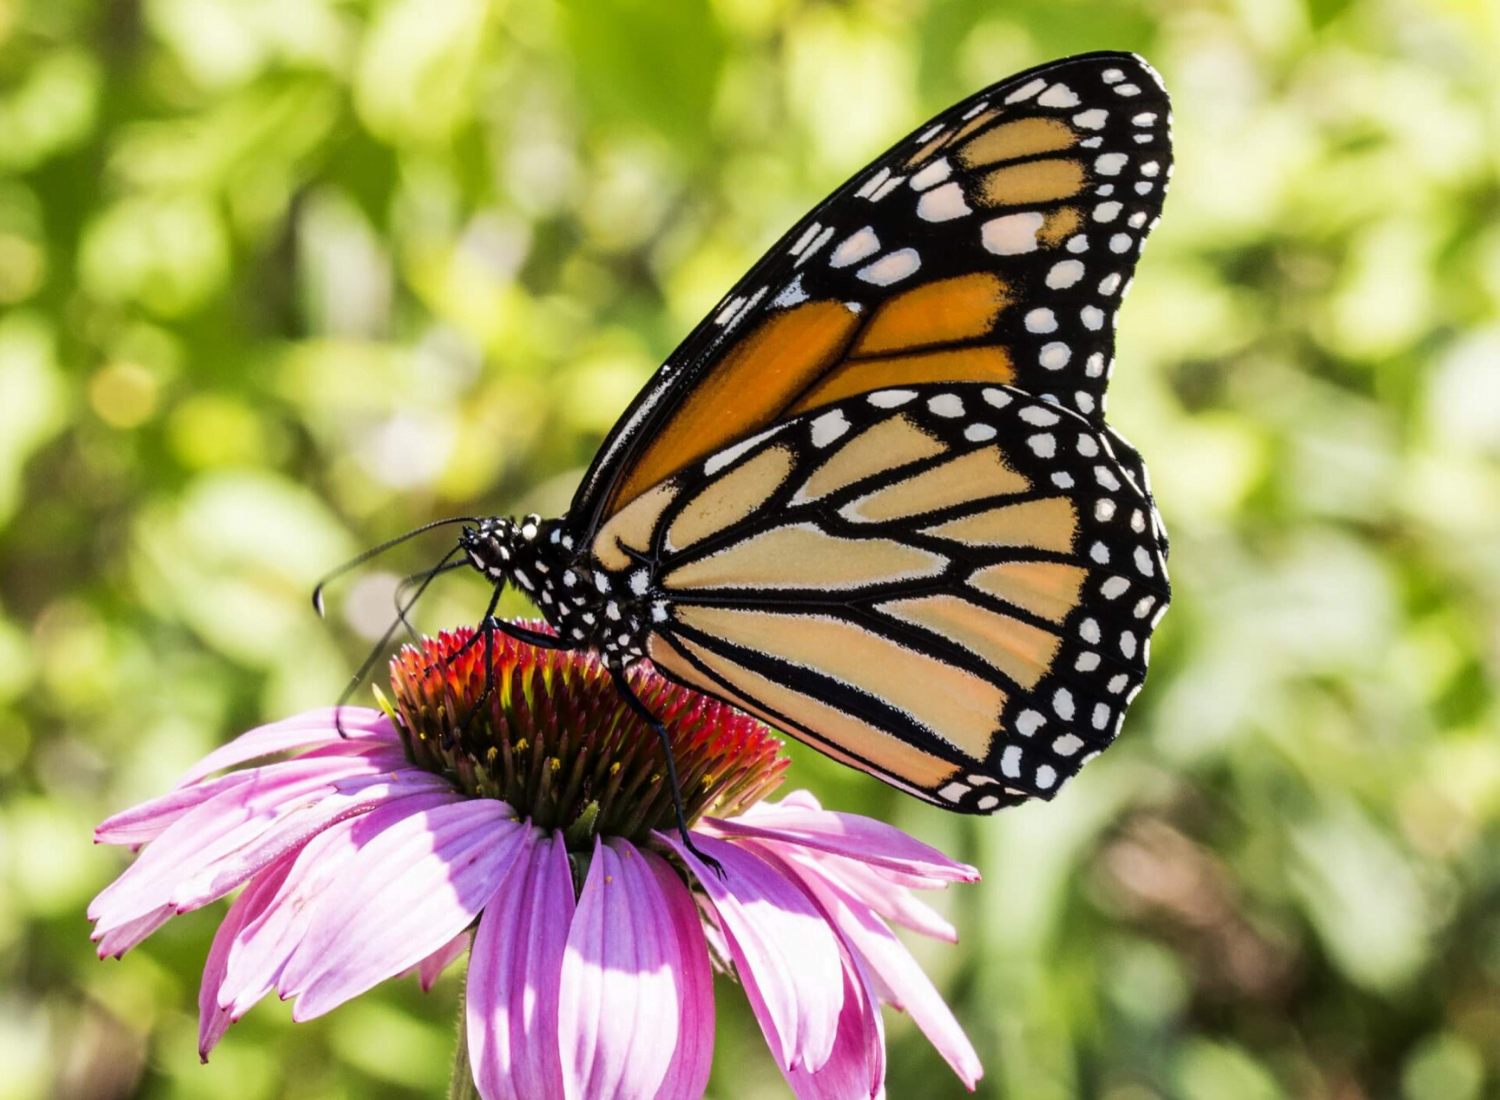 How Do Butterfly Wings Get Their Magnificent Color?